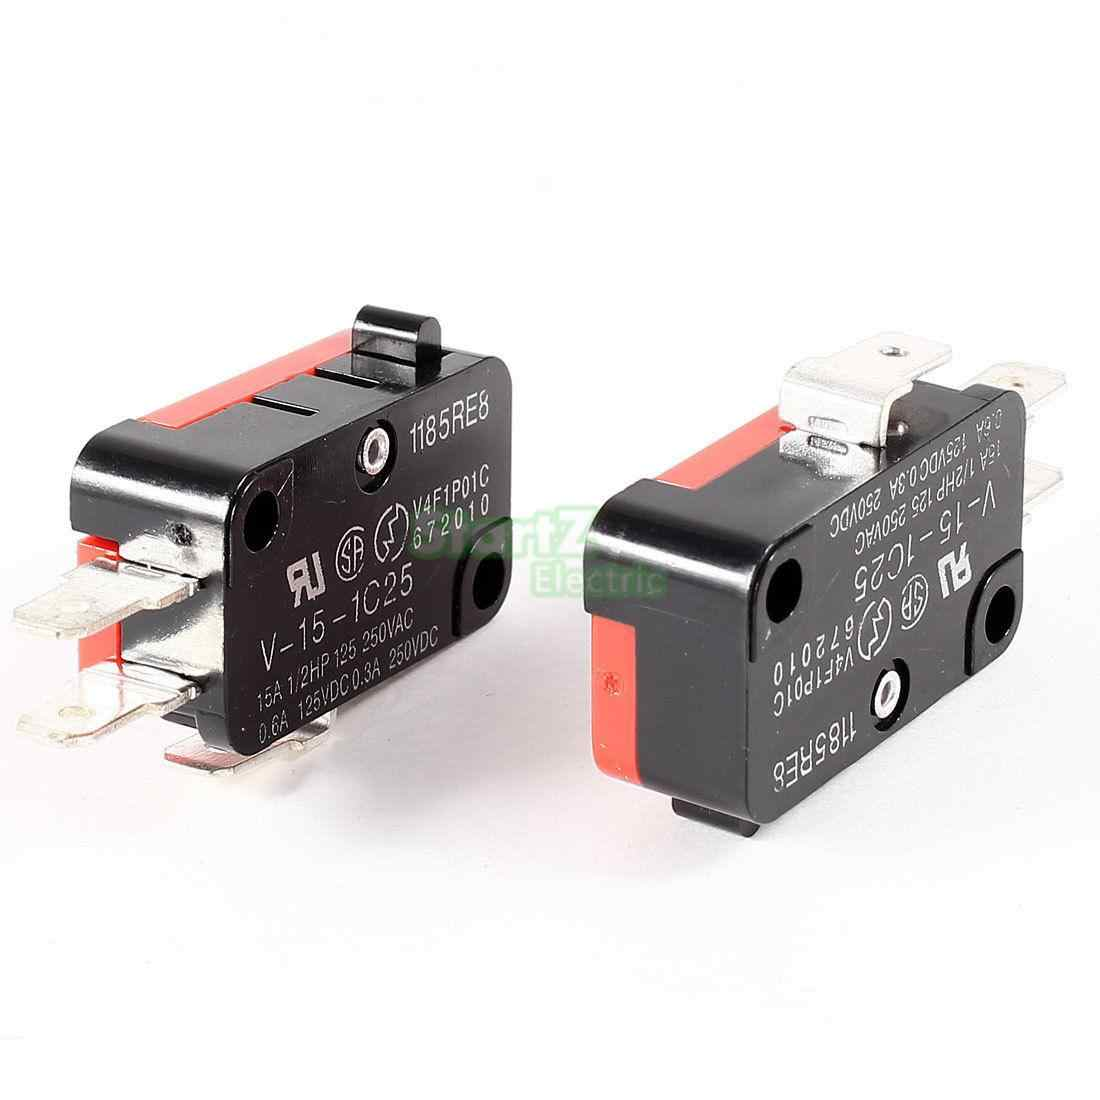 Detail Feedback Questions About 10pcs Lot Green Micro Switch No How To Wire Push Button 15 A 15a 250vac V 1c25 Spdt 1no 1nc